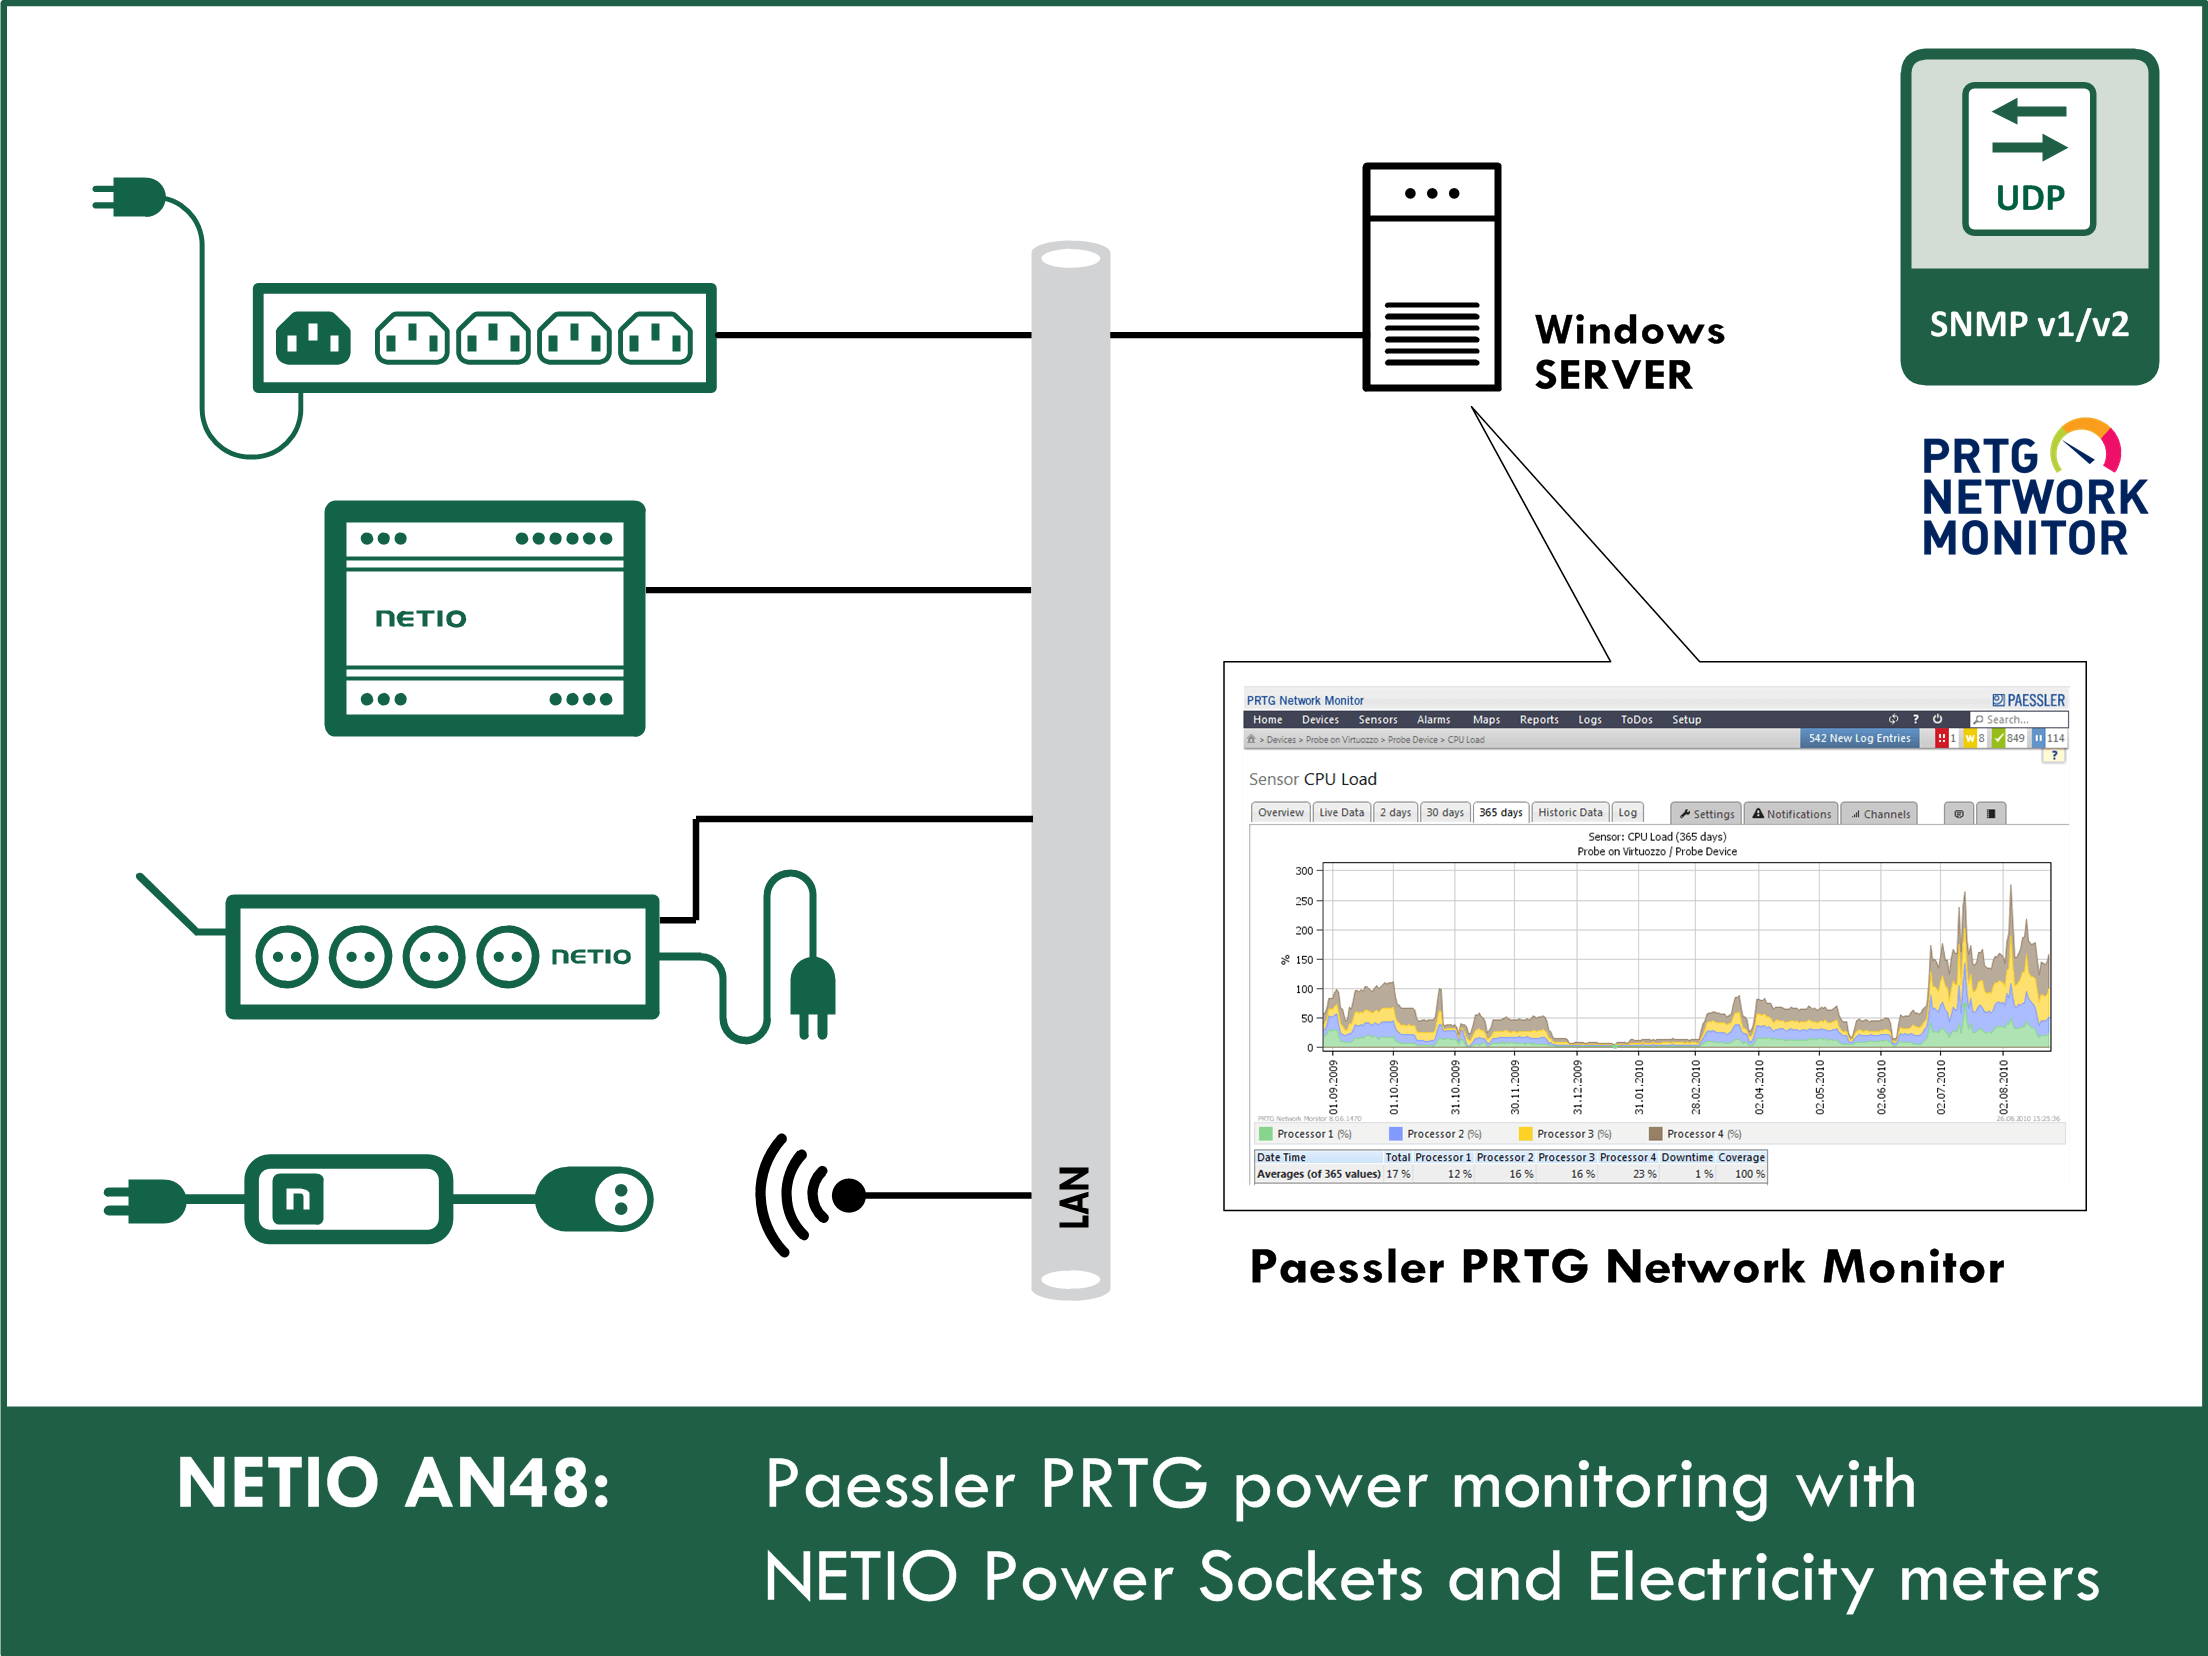 Paessler PRTG power monitoring with NETIO power sockets and electricity meters